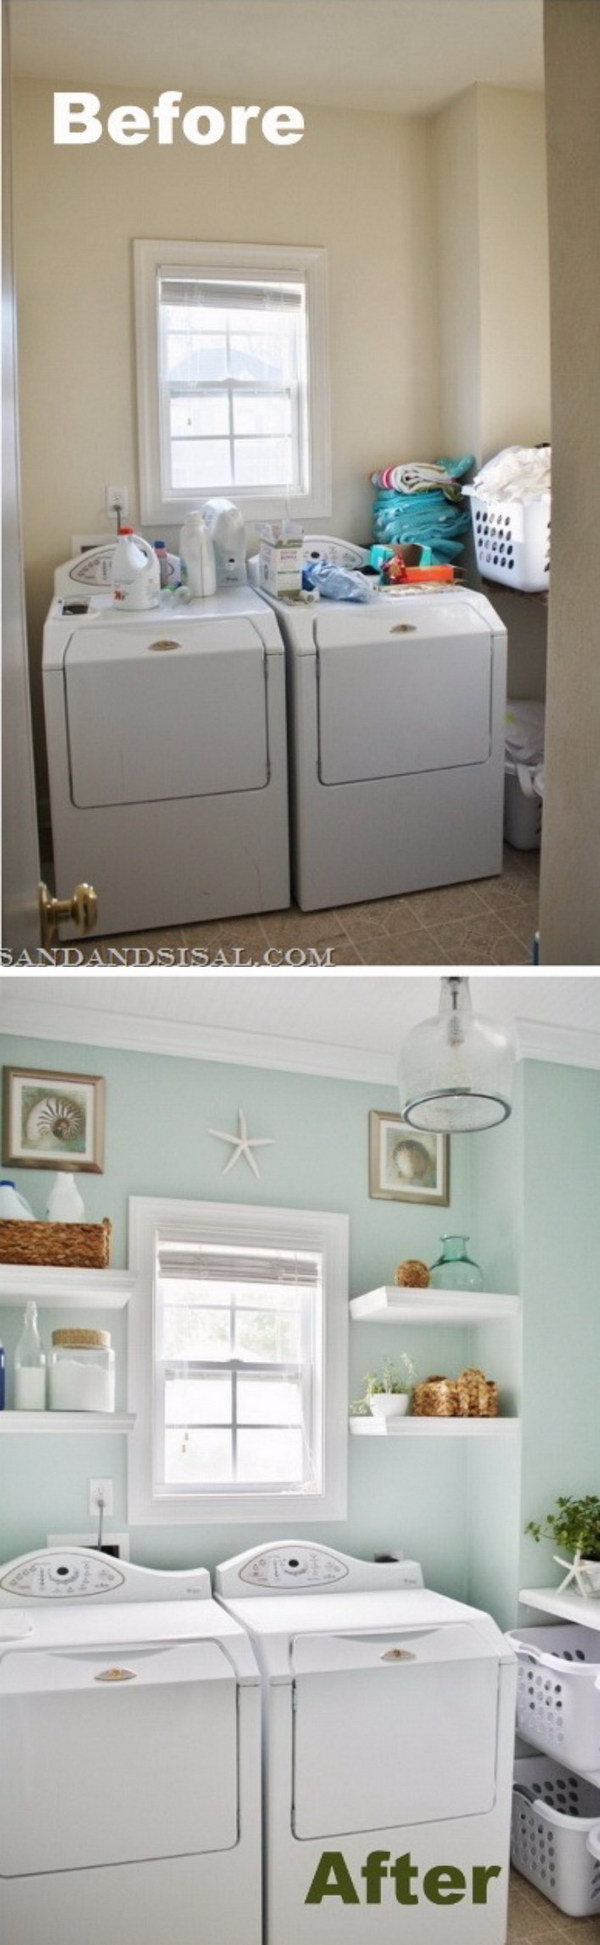 DIY Budget Laundry Room Makeover with Coastal Design Flavor.